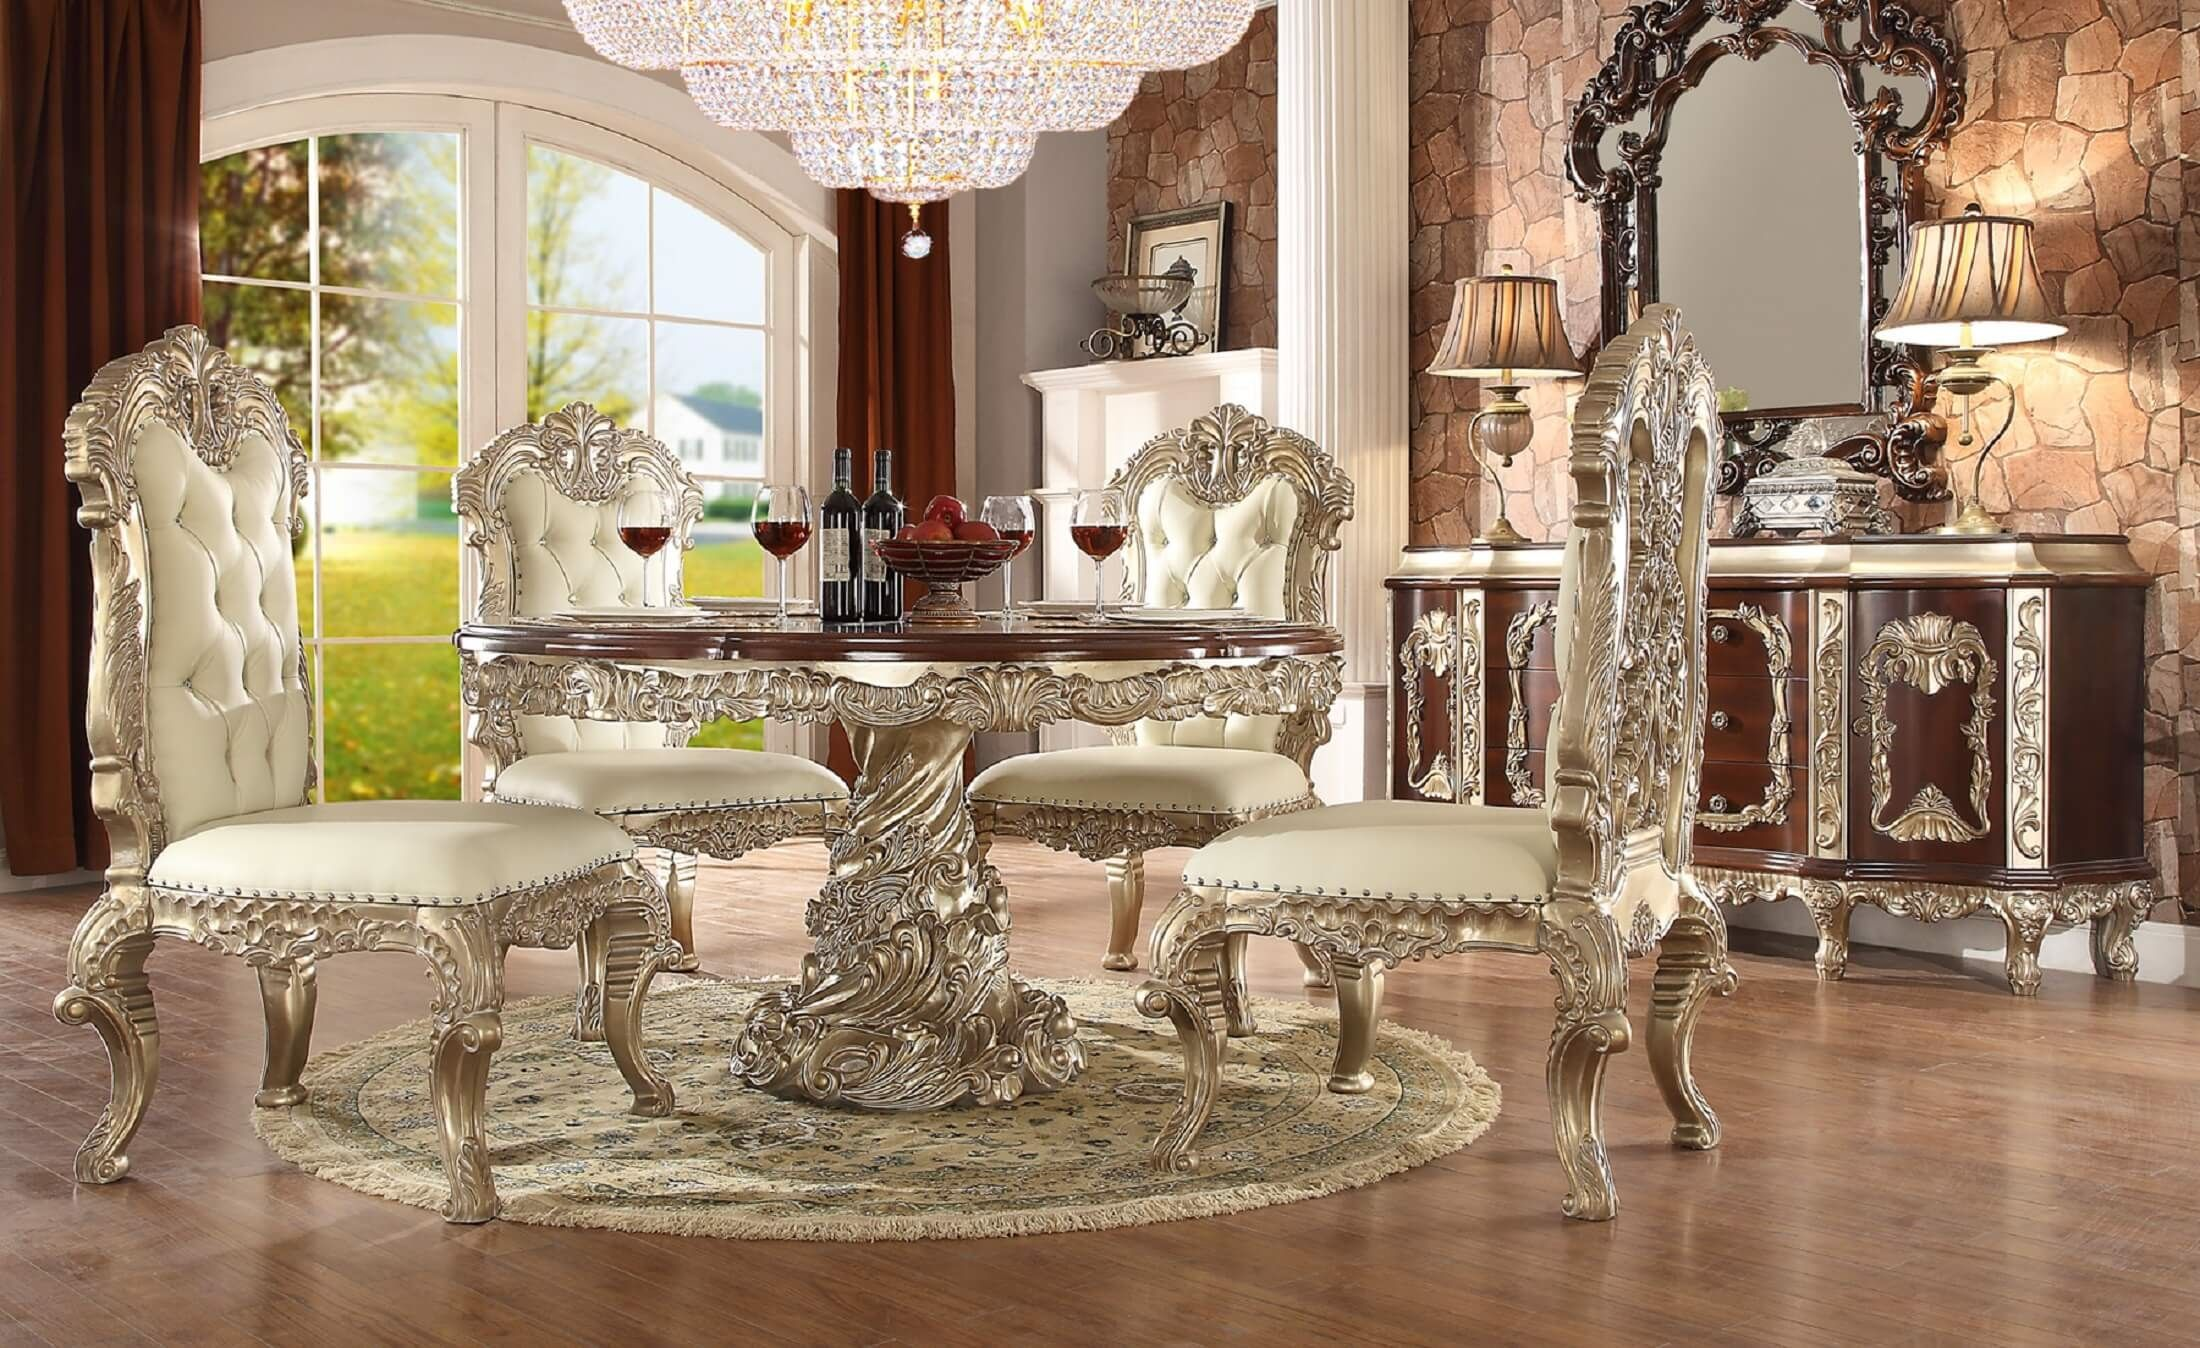 Homey Design HD 8017 Cleopatra Round Dining Set The Elaborate Designs Of  Old World Europe